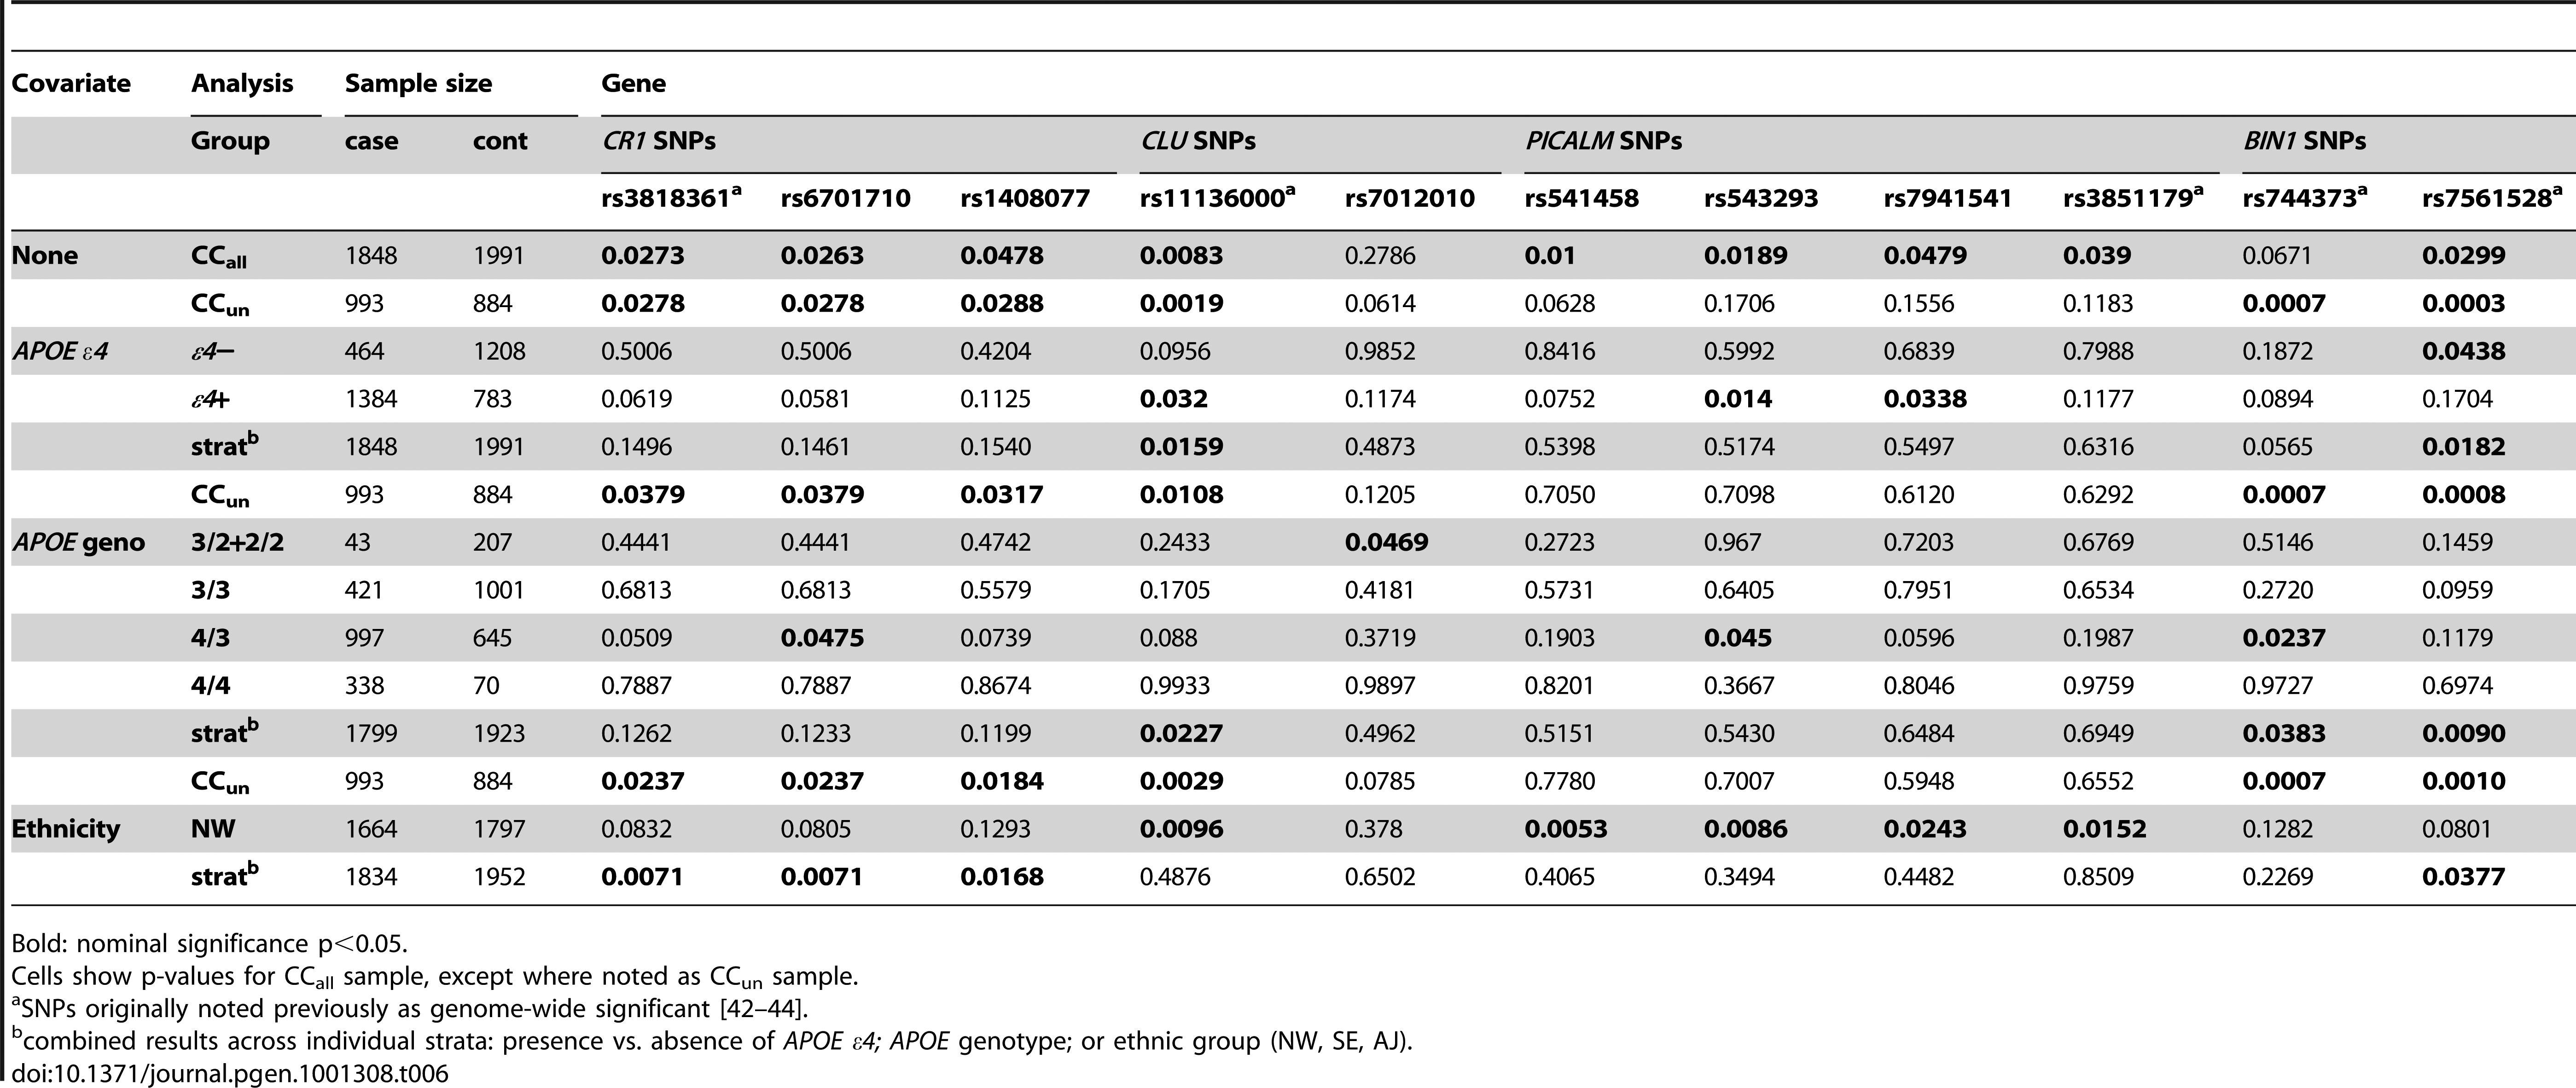 P-values for candidate SNPs based on genes previously reported with genome-wide significant results.